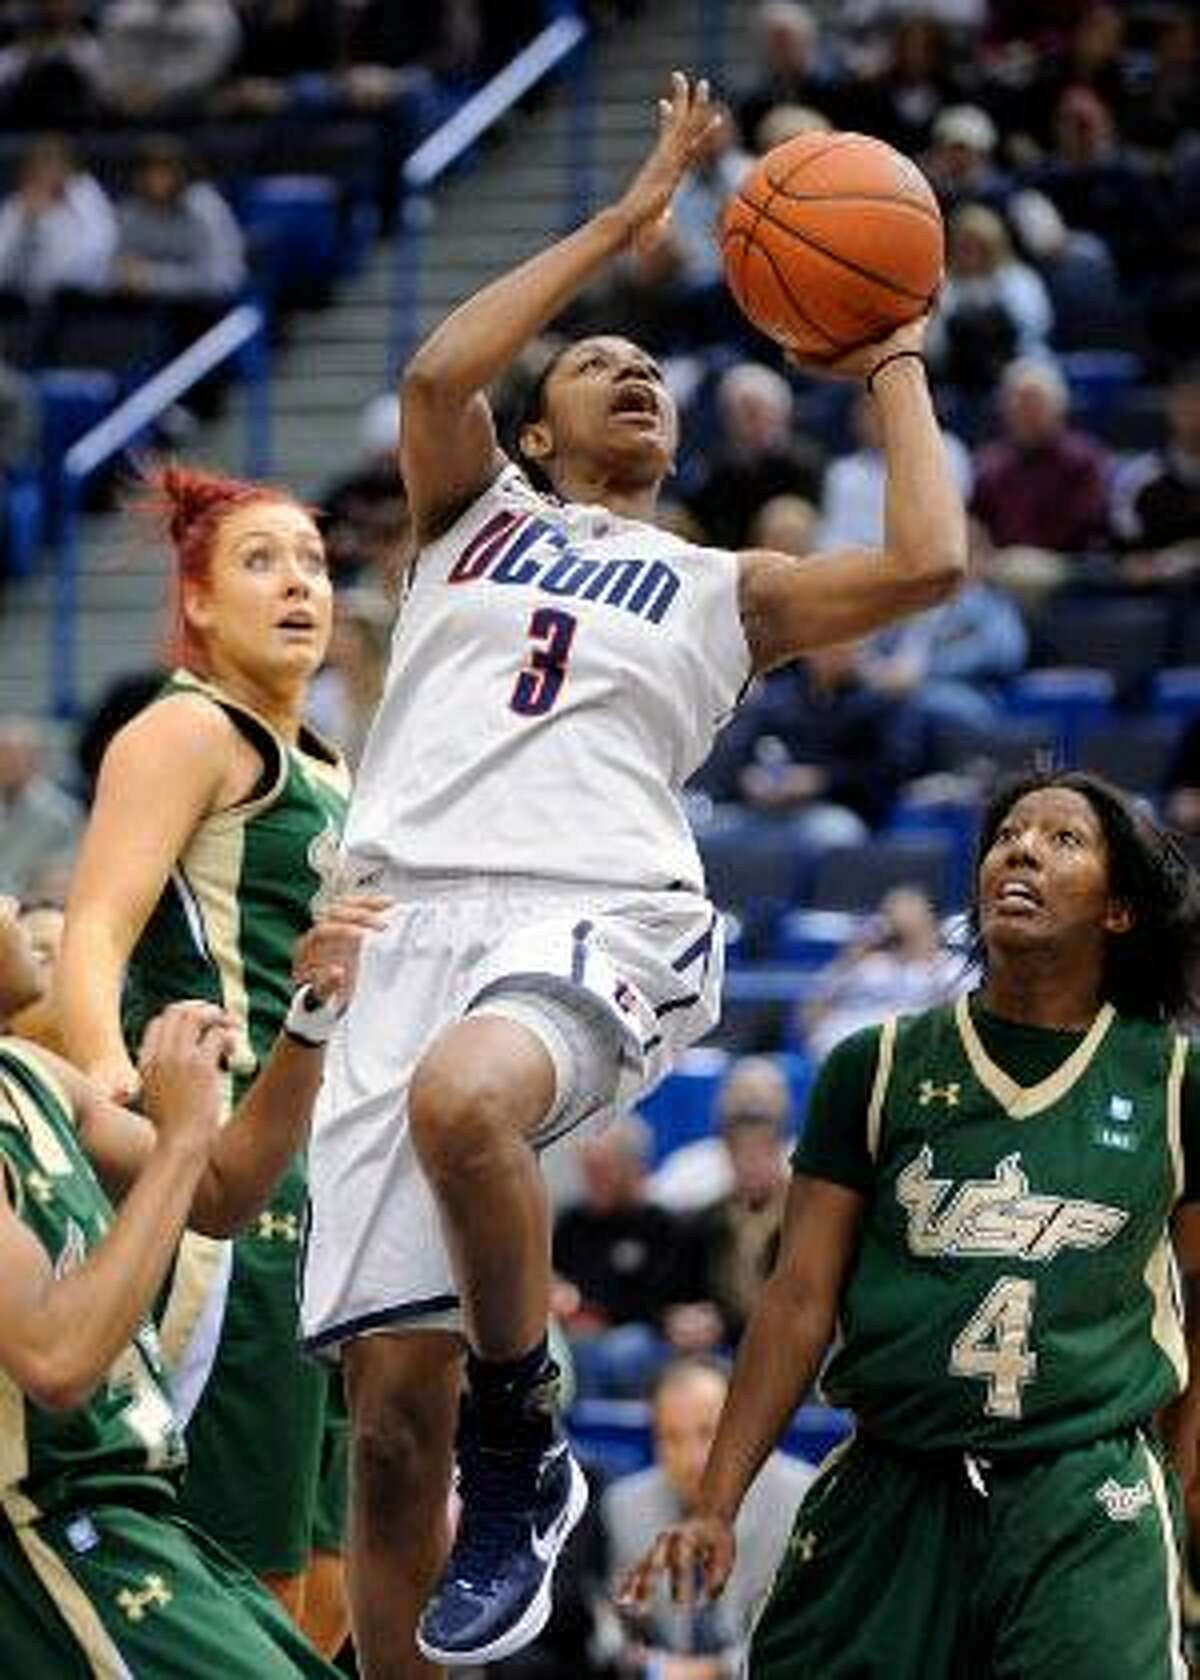 ASSOCIATED PRESS Connecticut's Tiffany Hayes, center, drives past South Florida's Caitlin Rowe, left, and Tiffany Conner (4) during the first half of Saturday's game in Hartford.